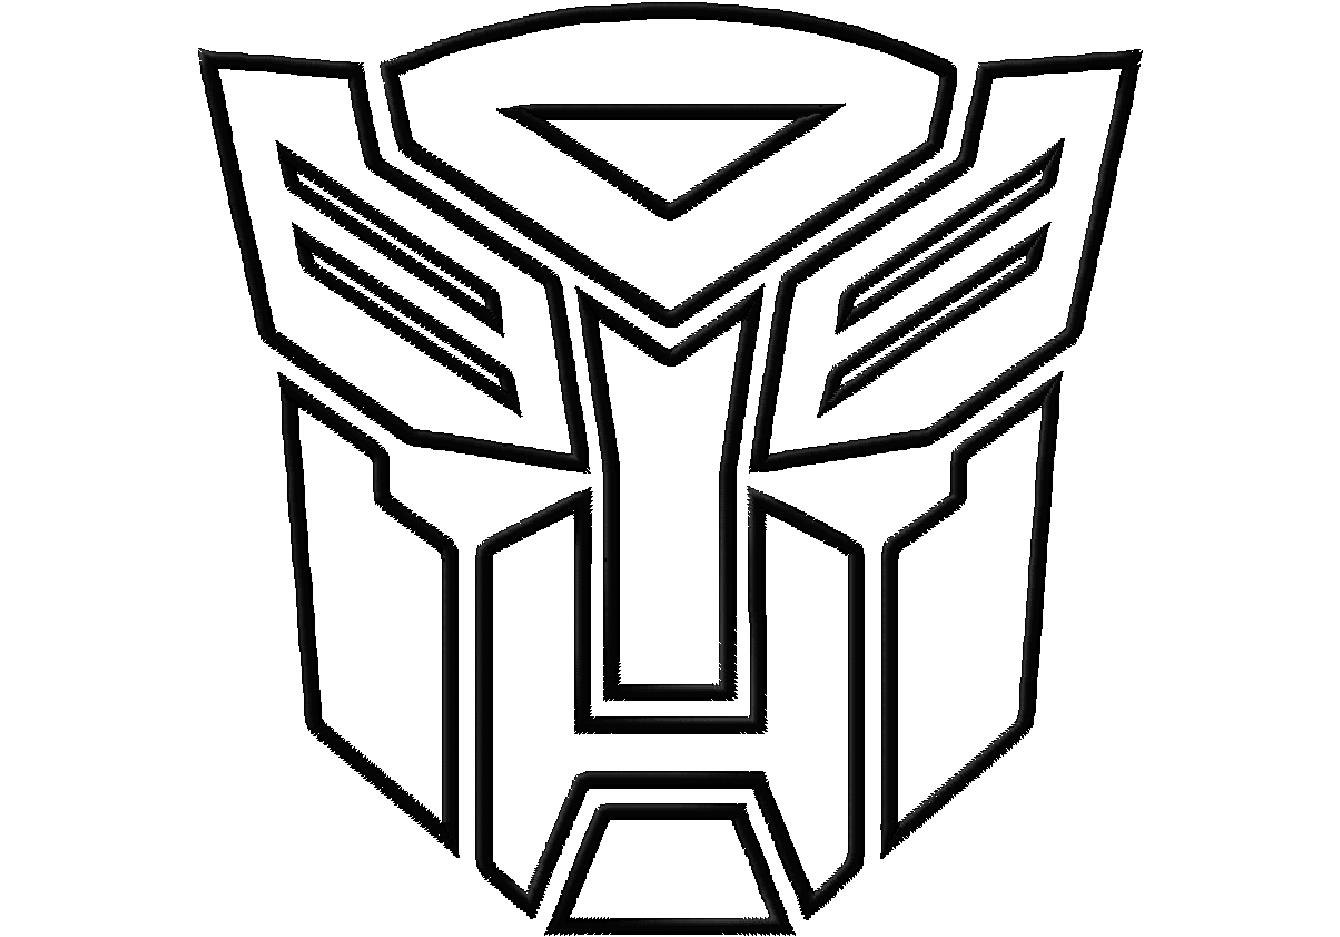 Free Transformers Symbol, Download Free Clip Art, Free Clip.